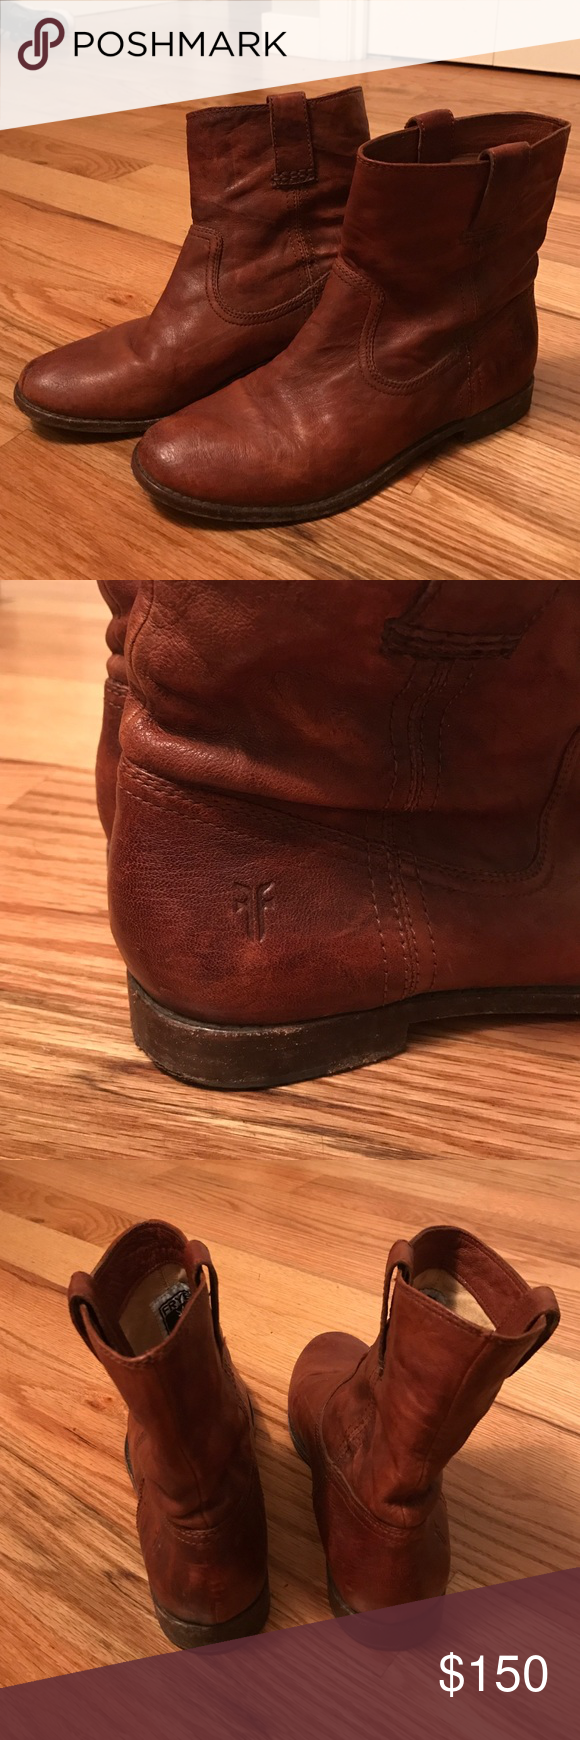 Frye Anna Shortie Bootie, Cognac Leather, Size 8 Frye Anna Shortie Bootie. Size 8. Cognac Leather. Gently worn 4-6 times. Frye Shoes Ankle Boots & Booties